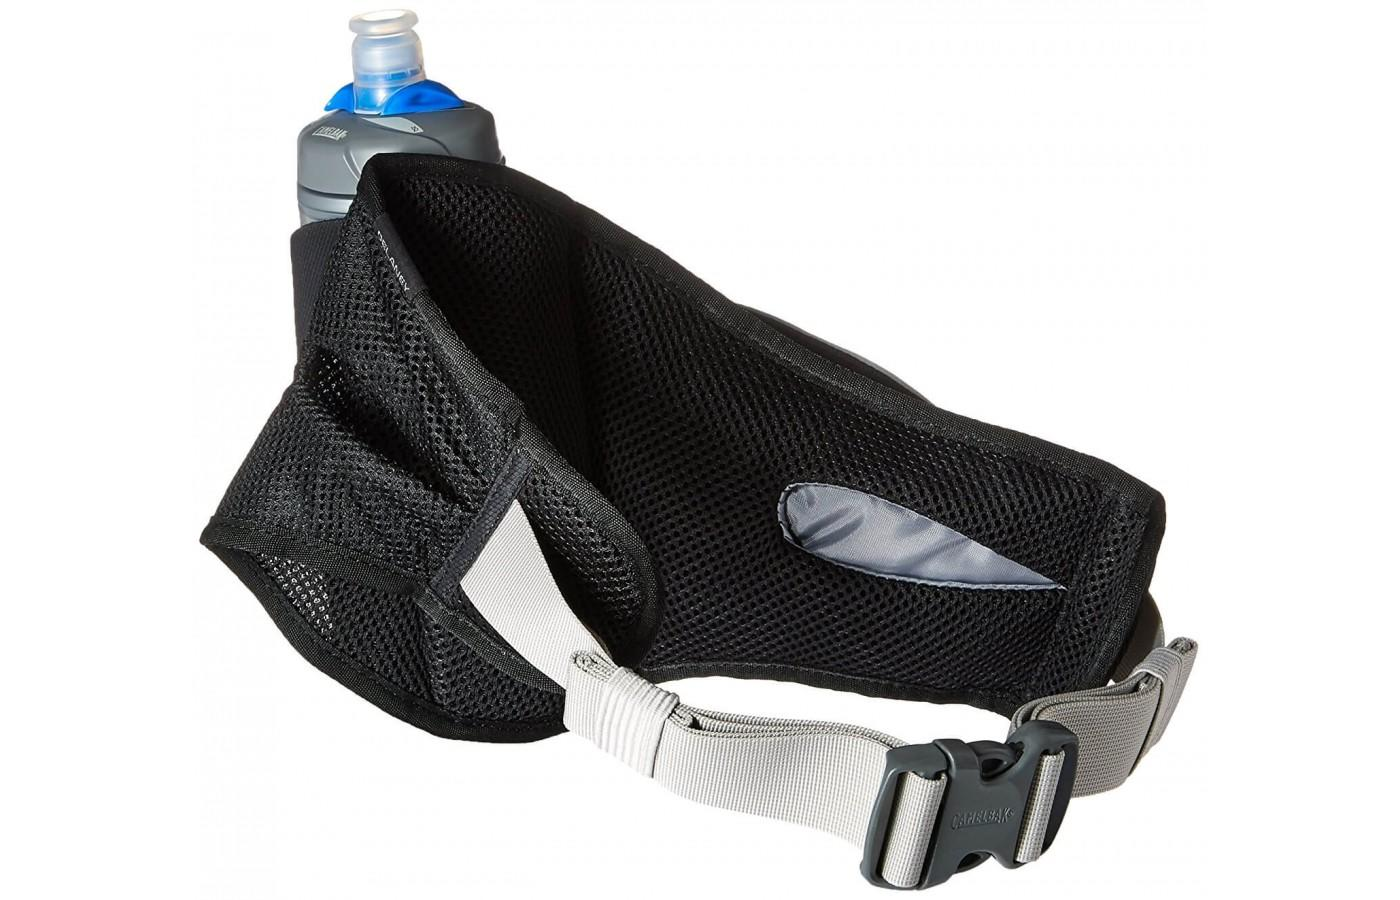 It features a unisex design and adjustable straps to provide a customizable fit